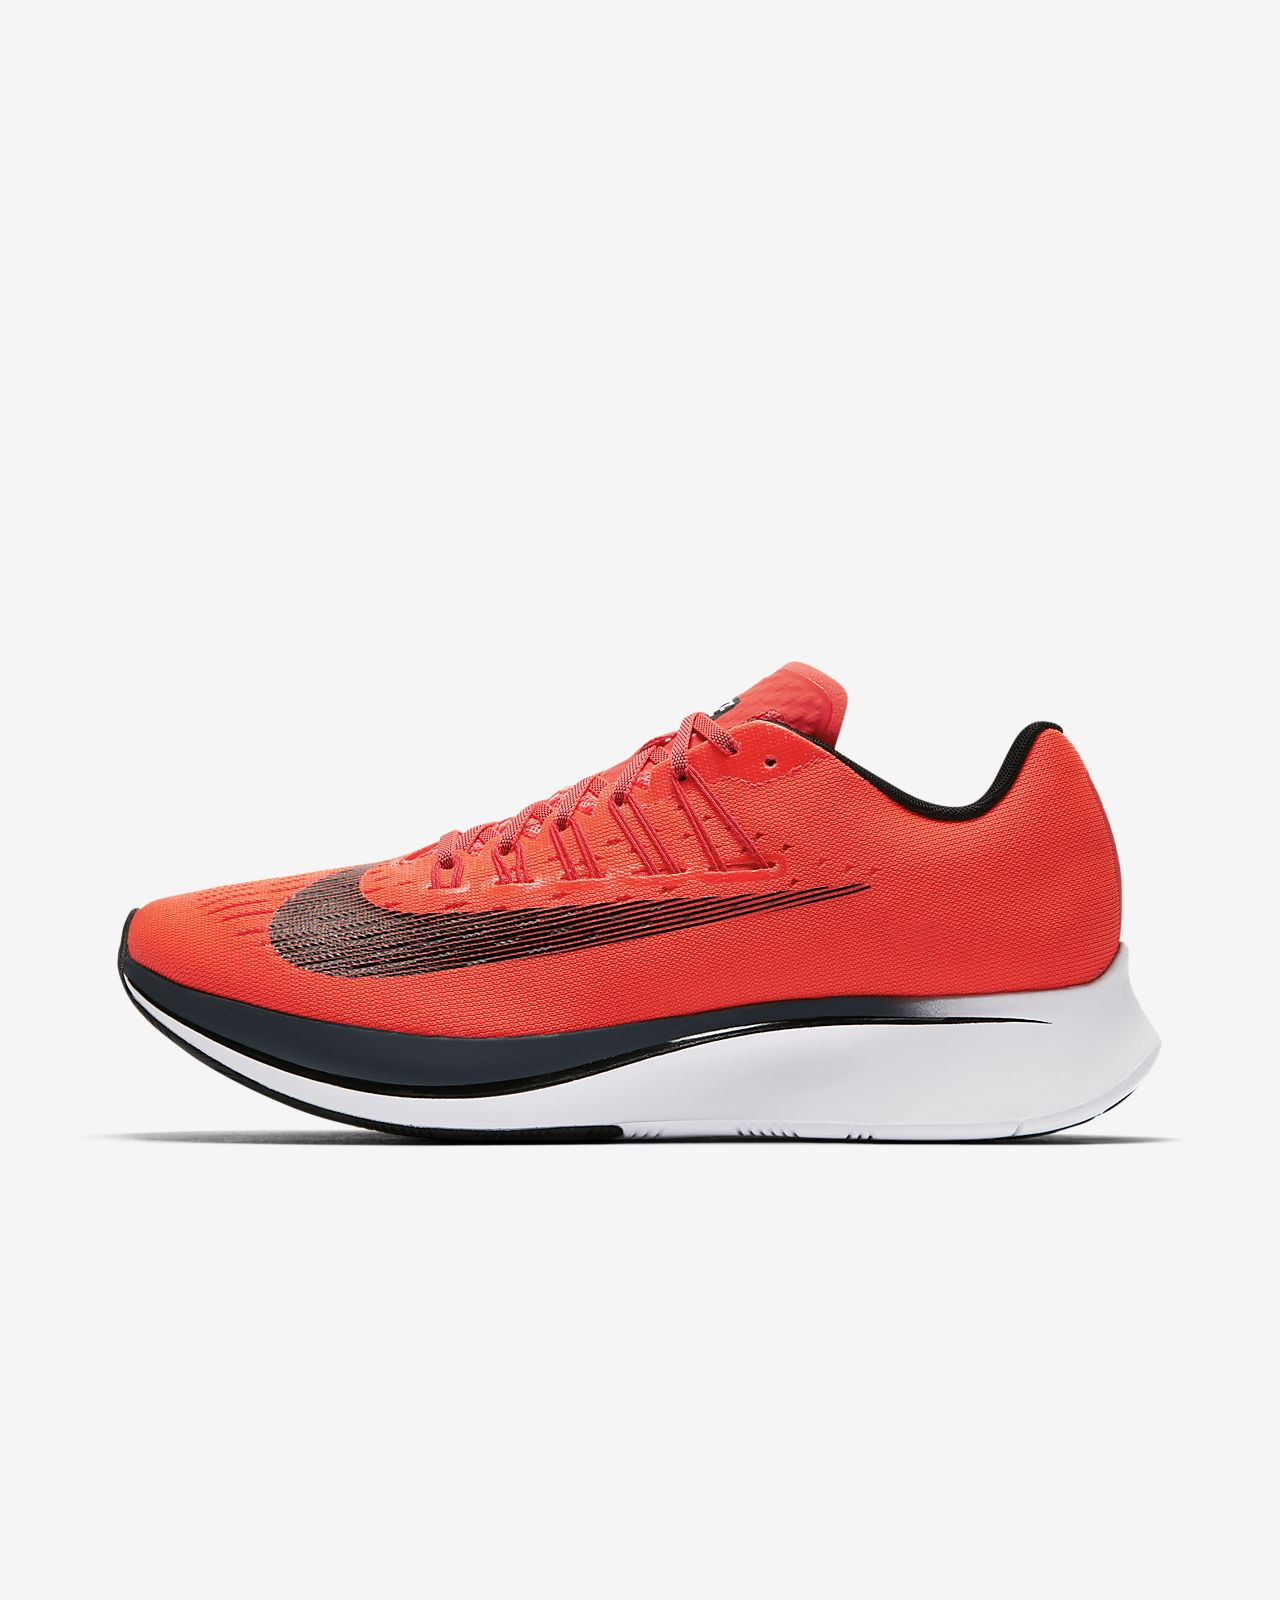 new arrival d183e 1a4b4 ... Scarpa da running Nike Zoom Fly - Uomo